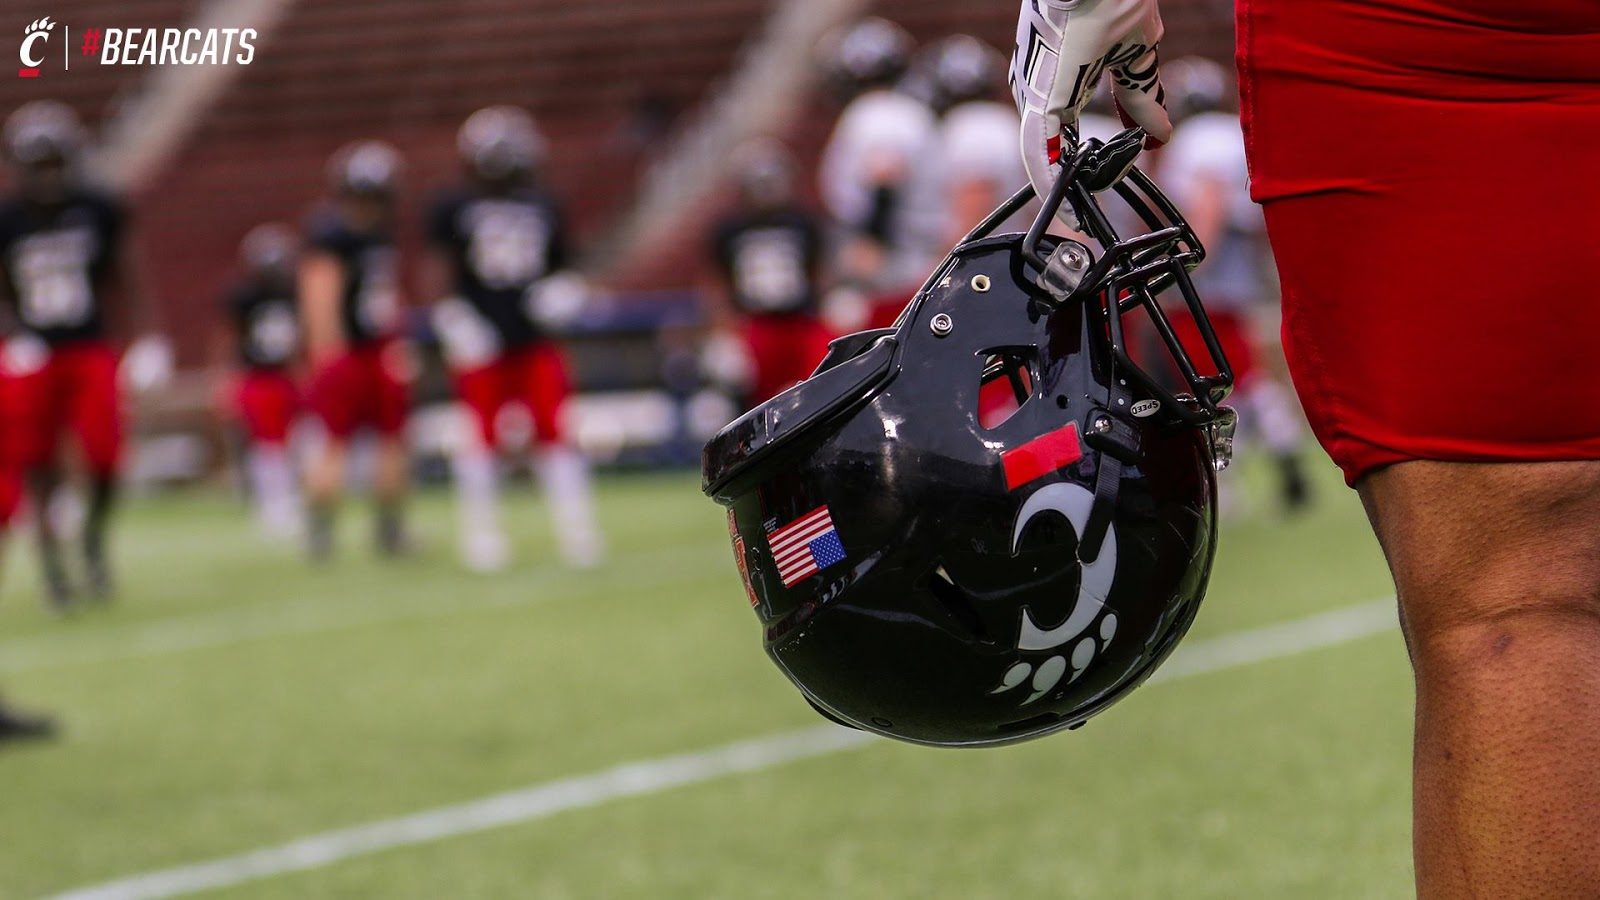 a player holding the Cincinnati Bearcats football helmet with other players in the background